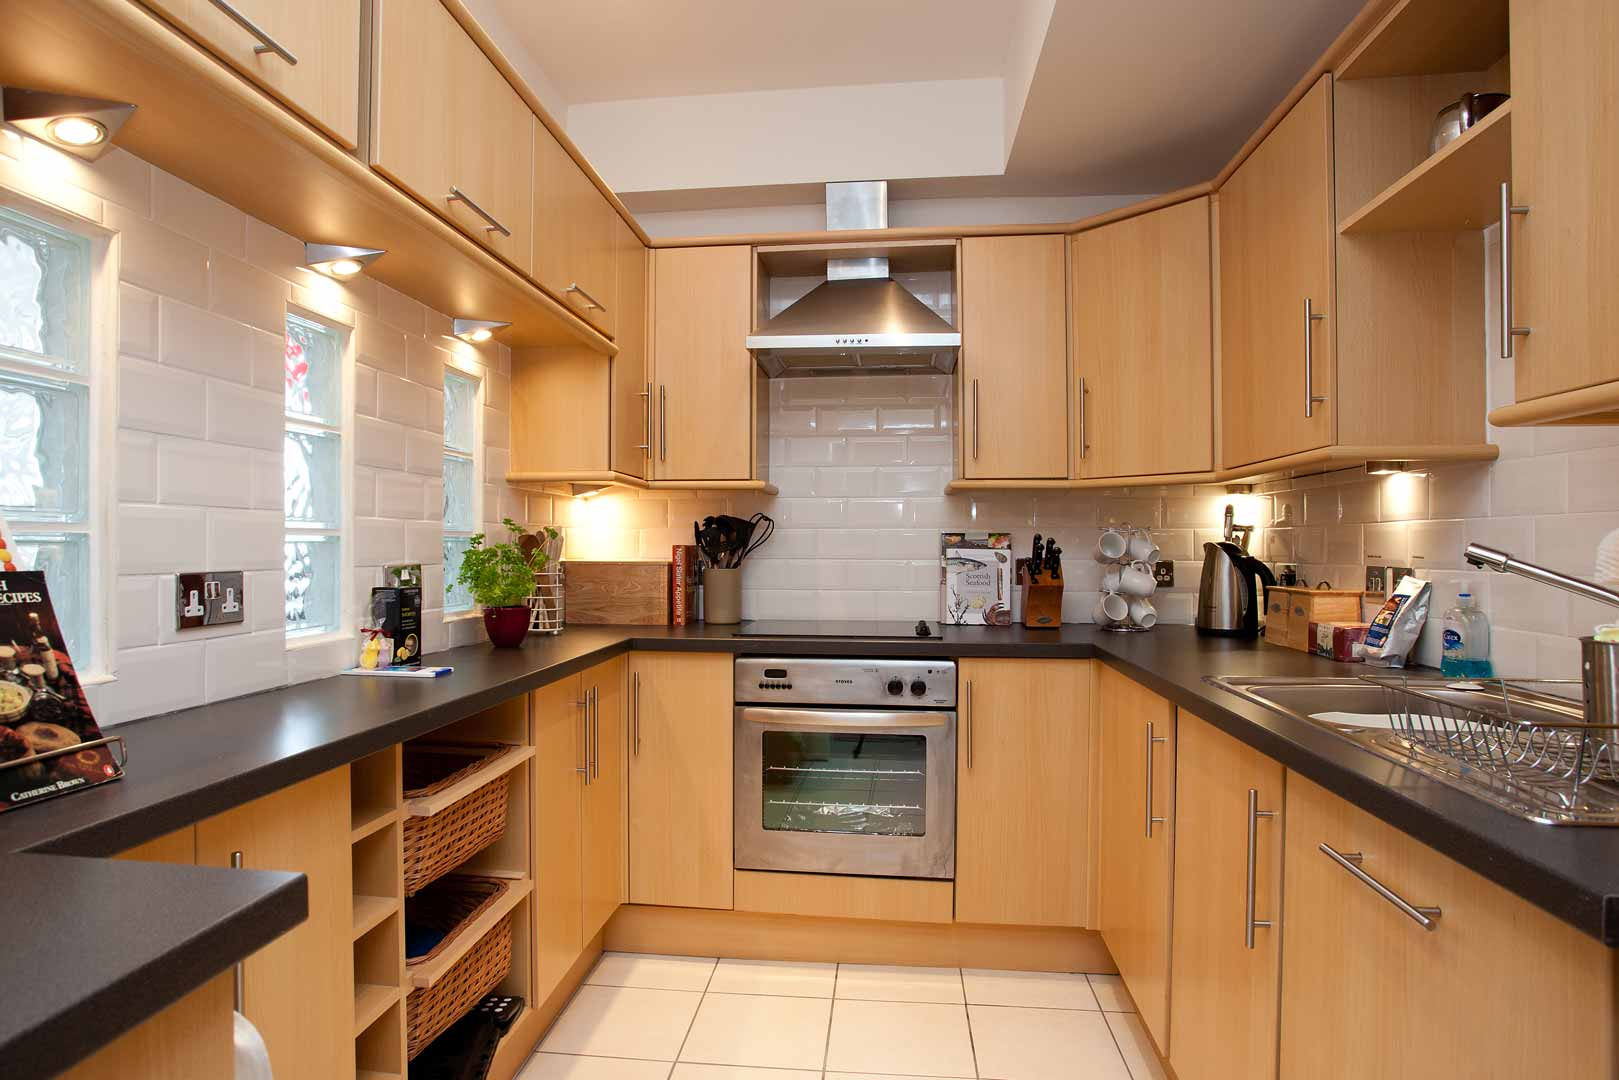 Islay holiday apartments: superbly equipped kitchens